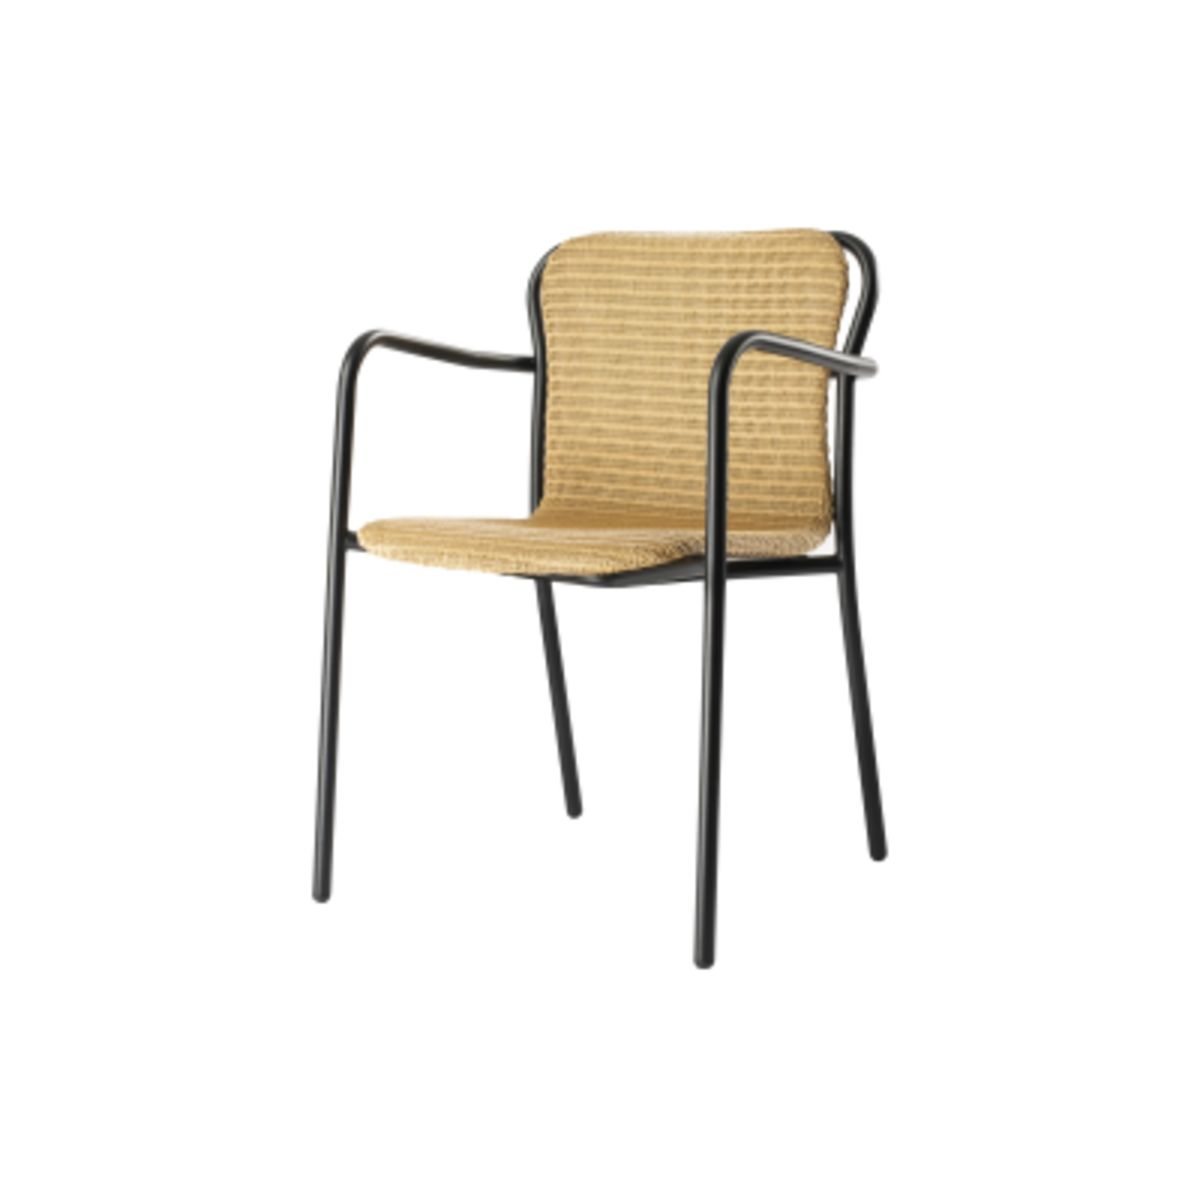 Hug Soft Dining Chair With Armrests Dining Chairs By